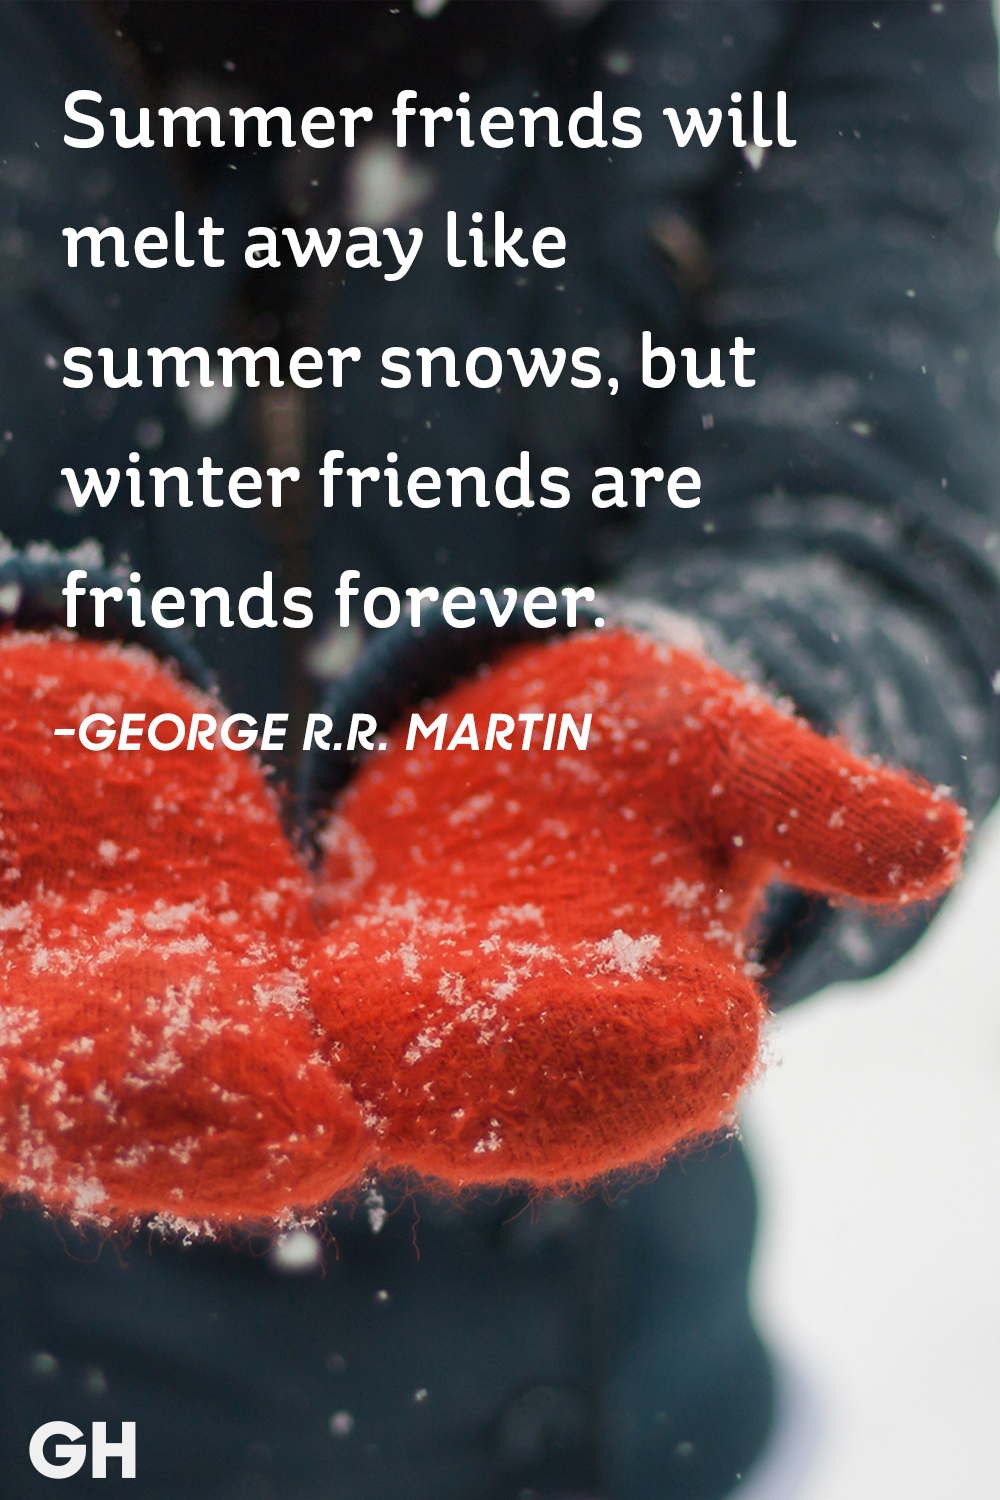 12 Best Quotes About Snow - Snowy Winter Quotes & Sayings